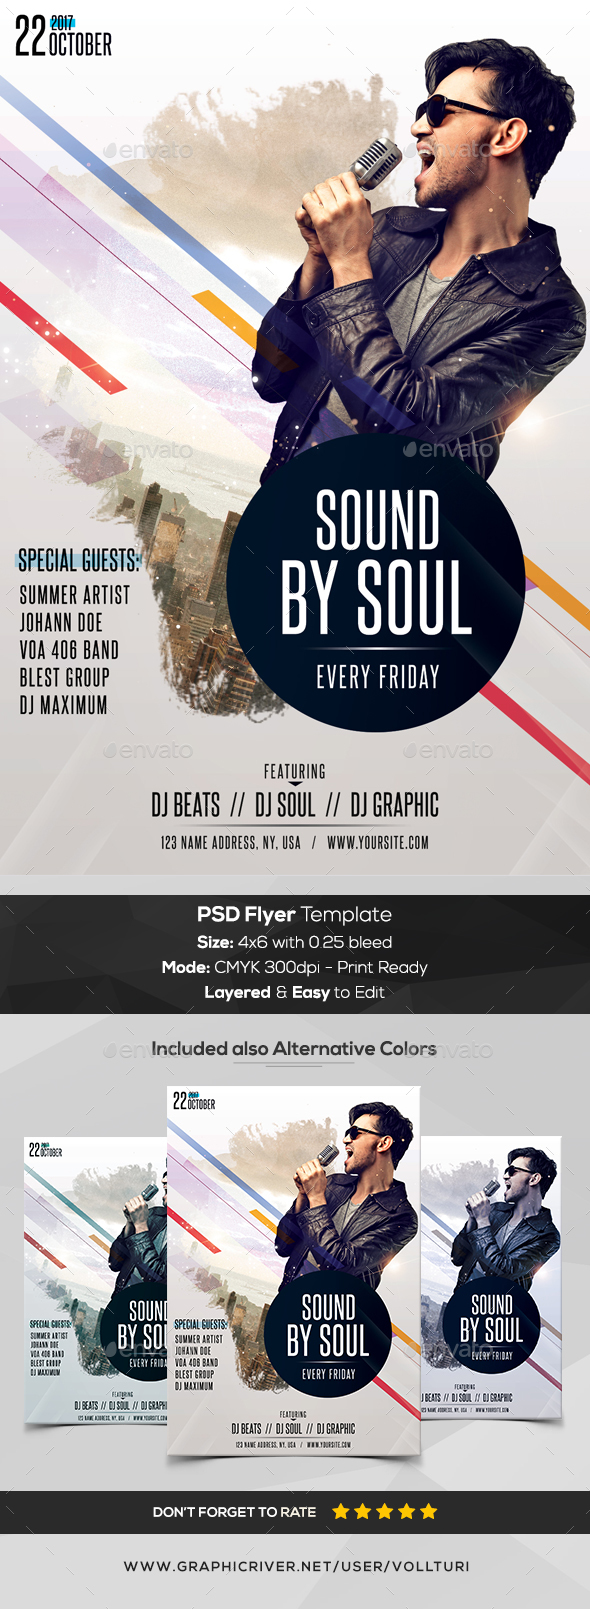 Sound by Soul - PSD Flyer Template - Flyers Print Templates